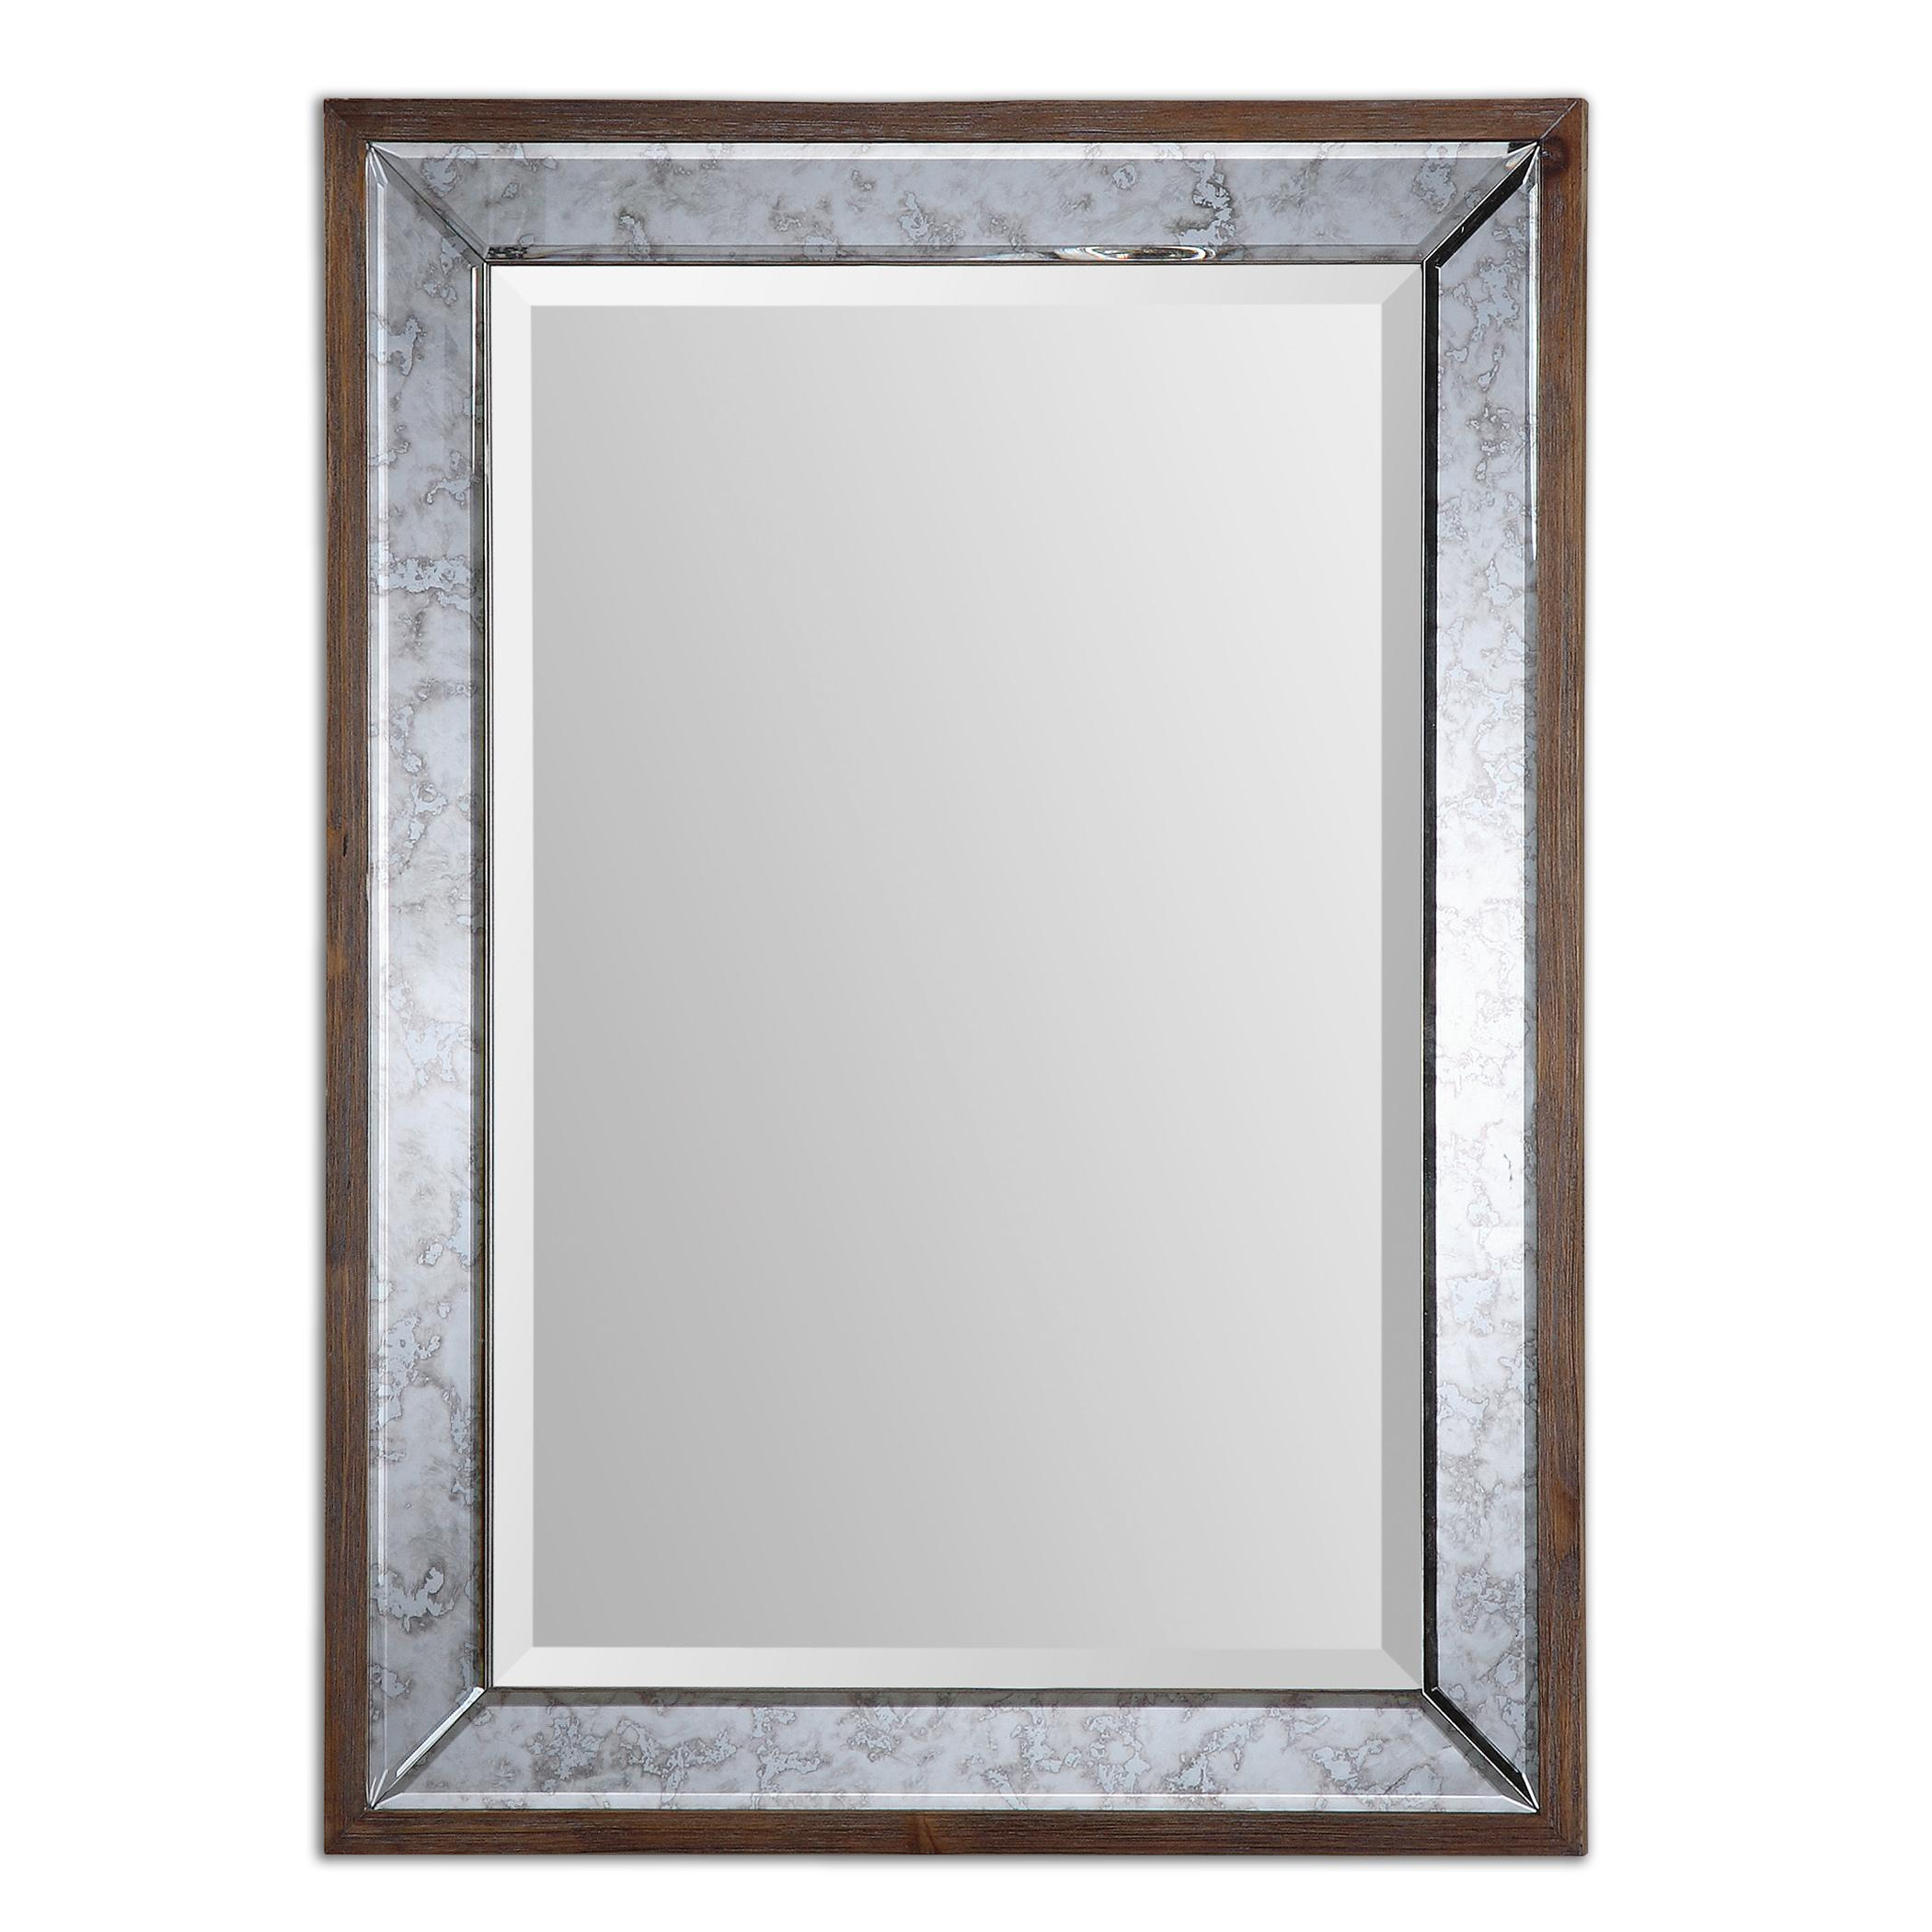 Uttermost Mirrors Daria Antique Framed Mirror - Item Number: 14487